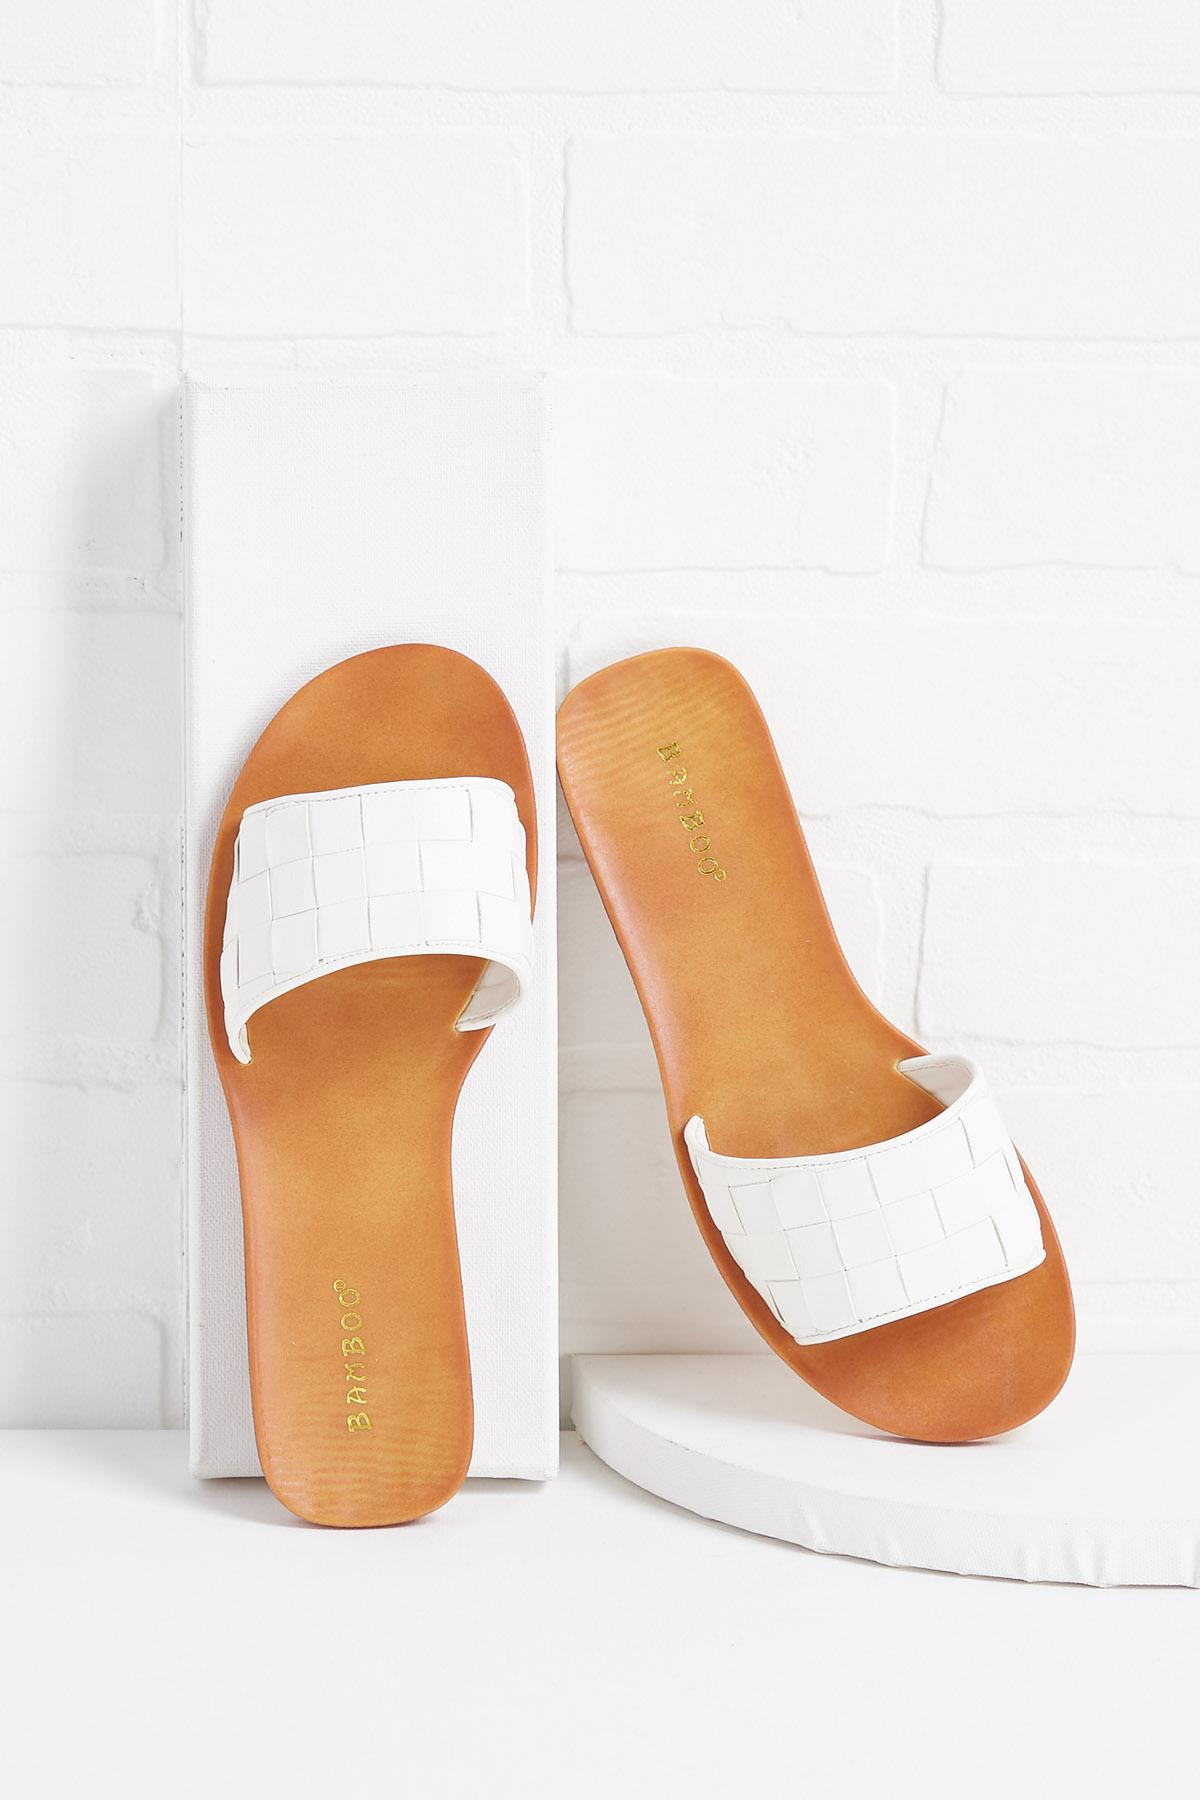 Stay Or Weave Sandals